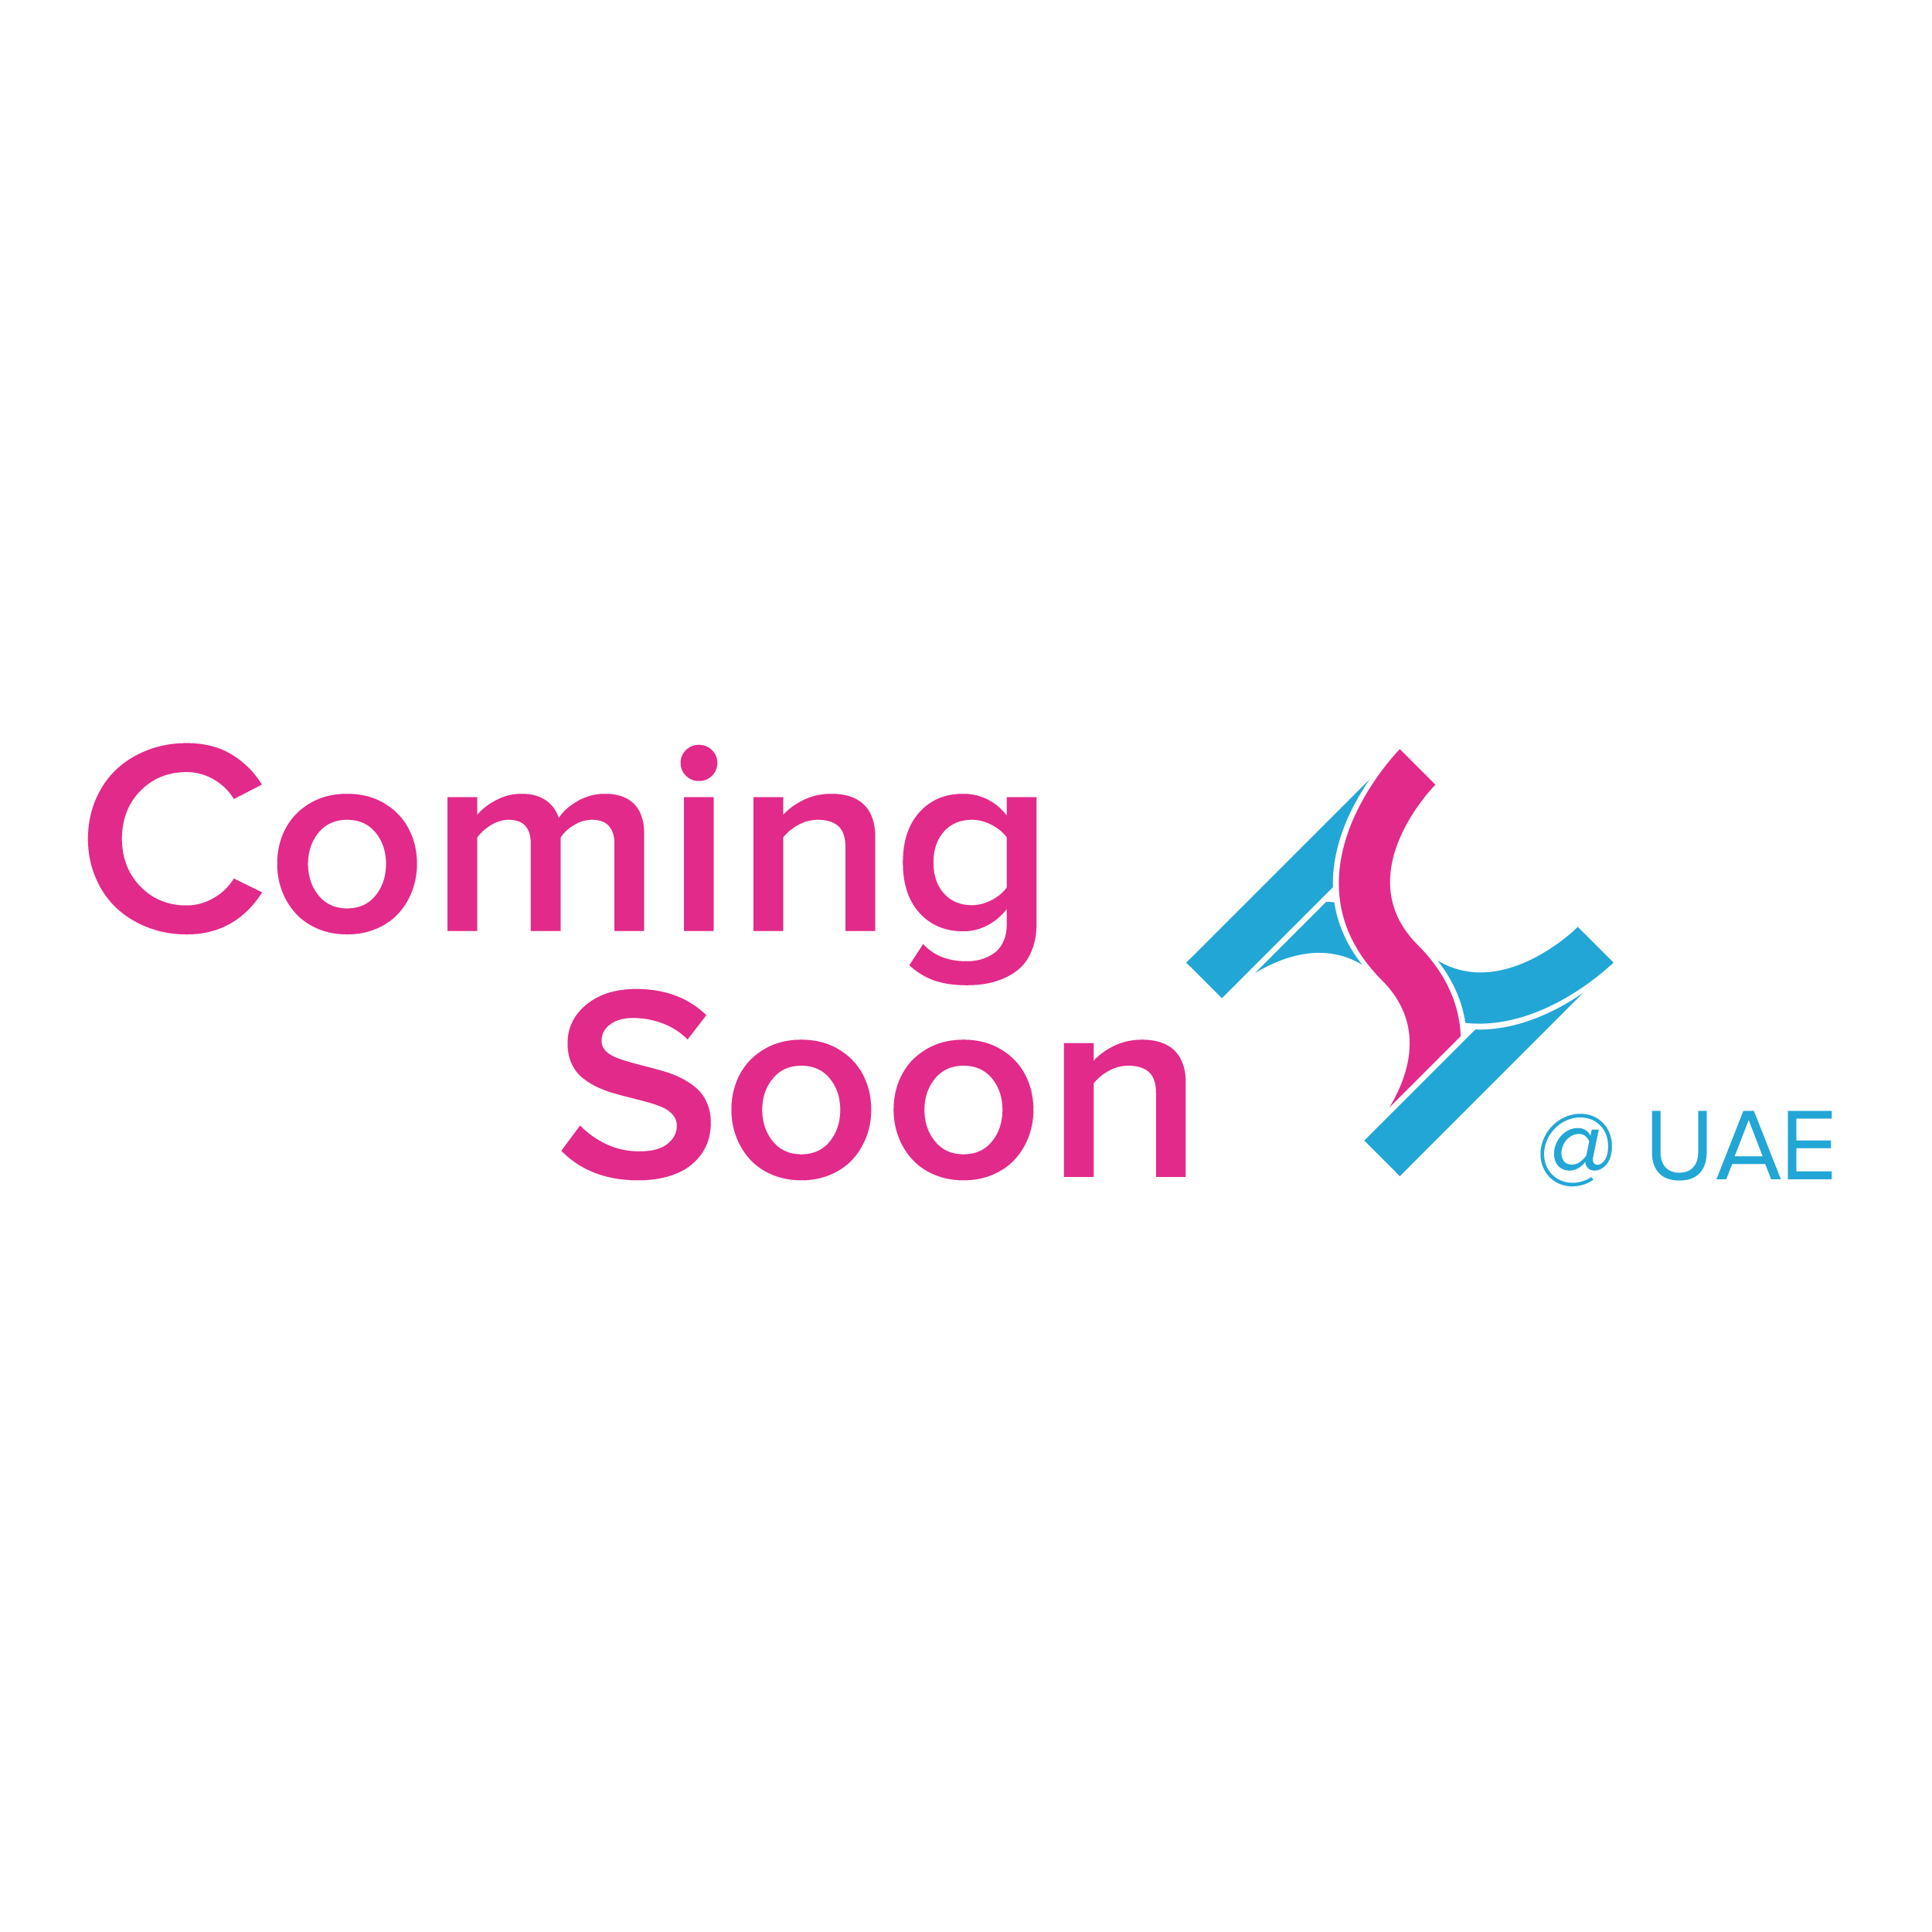 Coming Soon in UAE